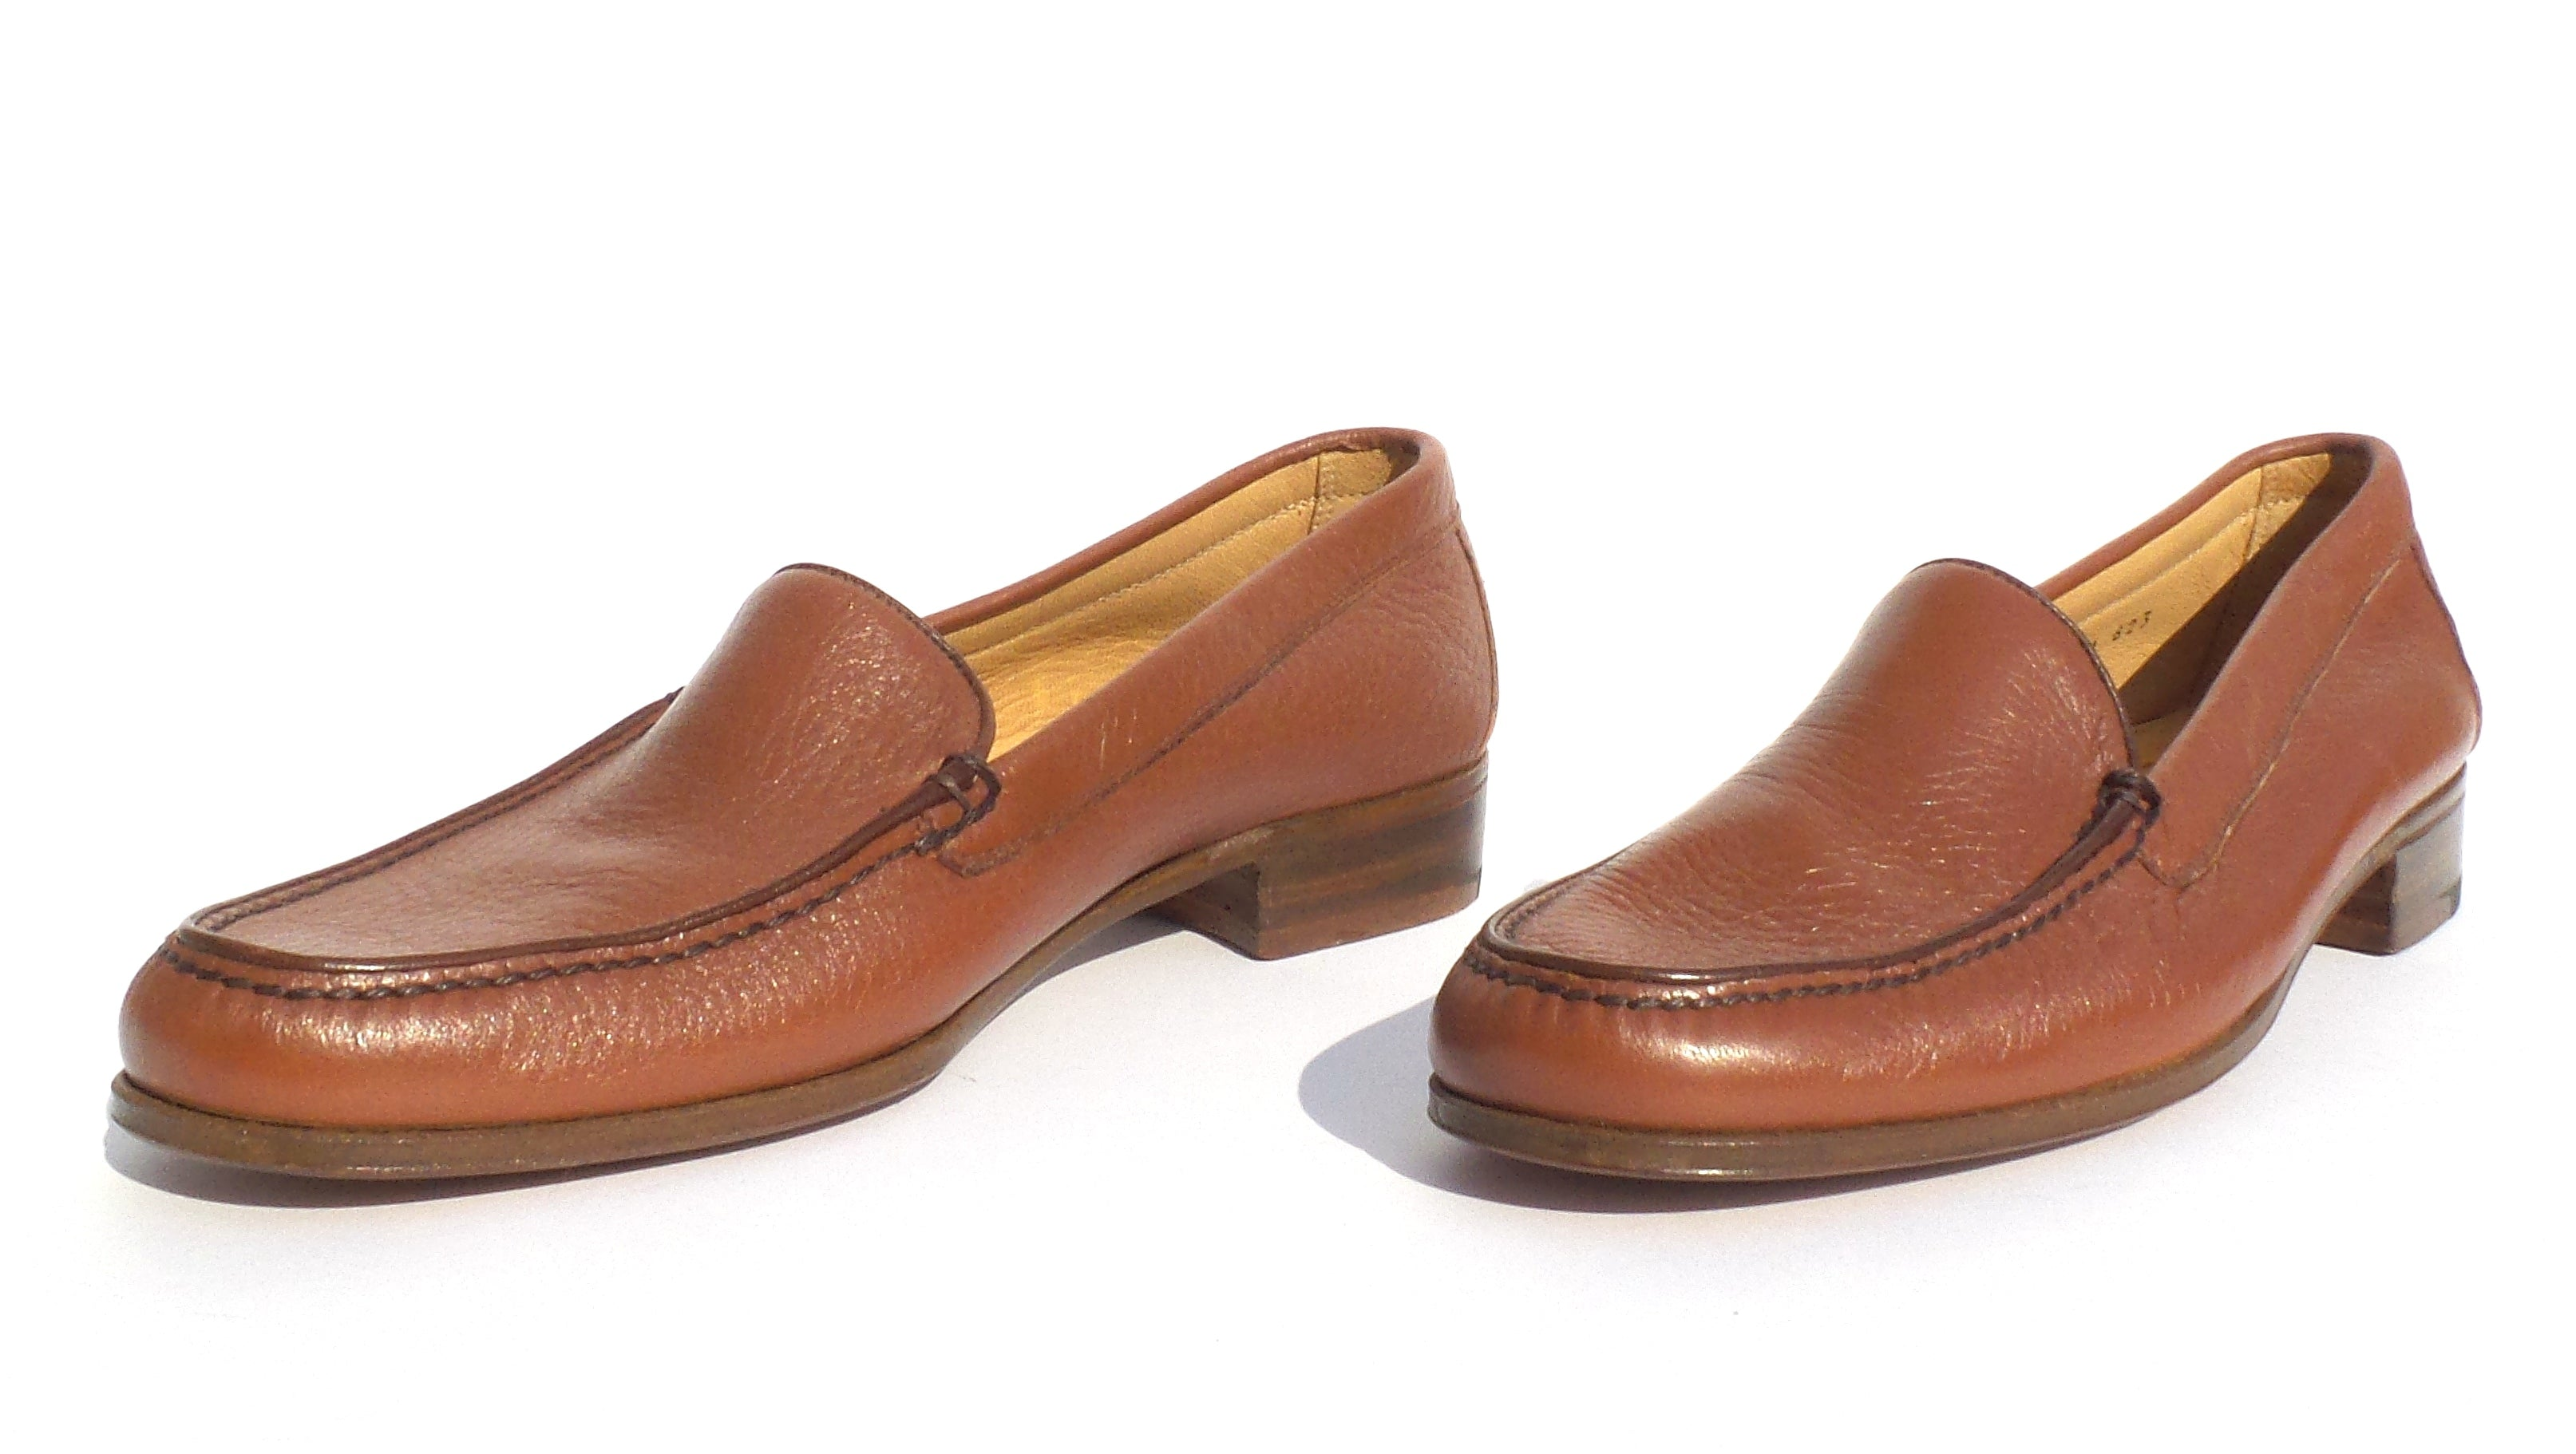 GRAVATI Cognac Brown Leather Round Toe Moccasin Loafers Flats Italy 7 M 3168 GUC